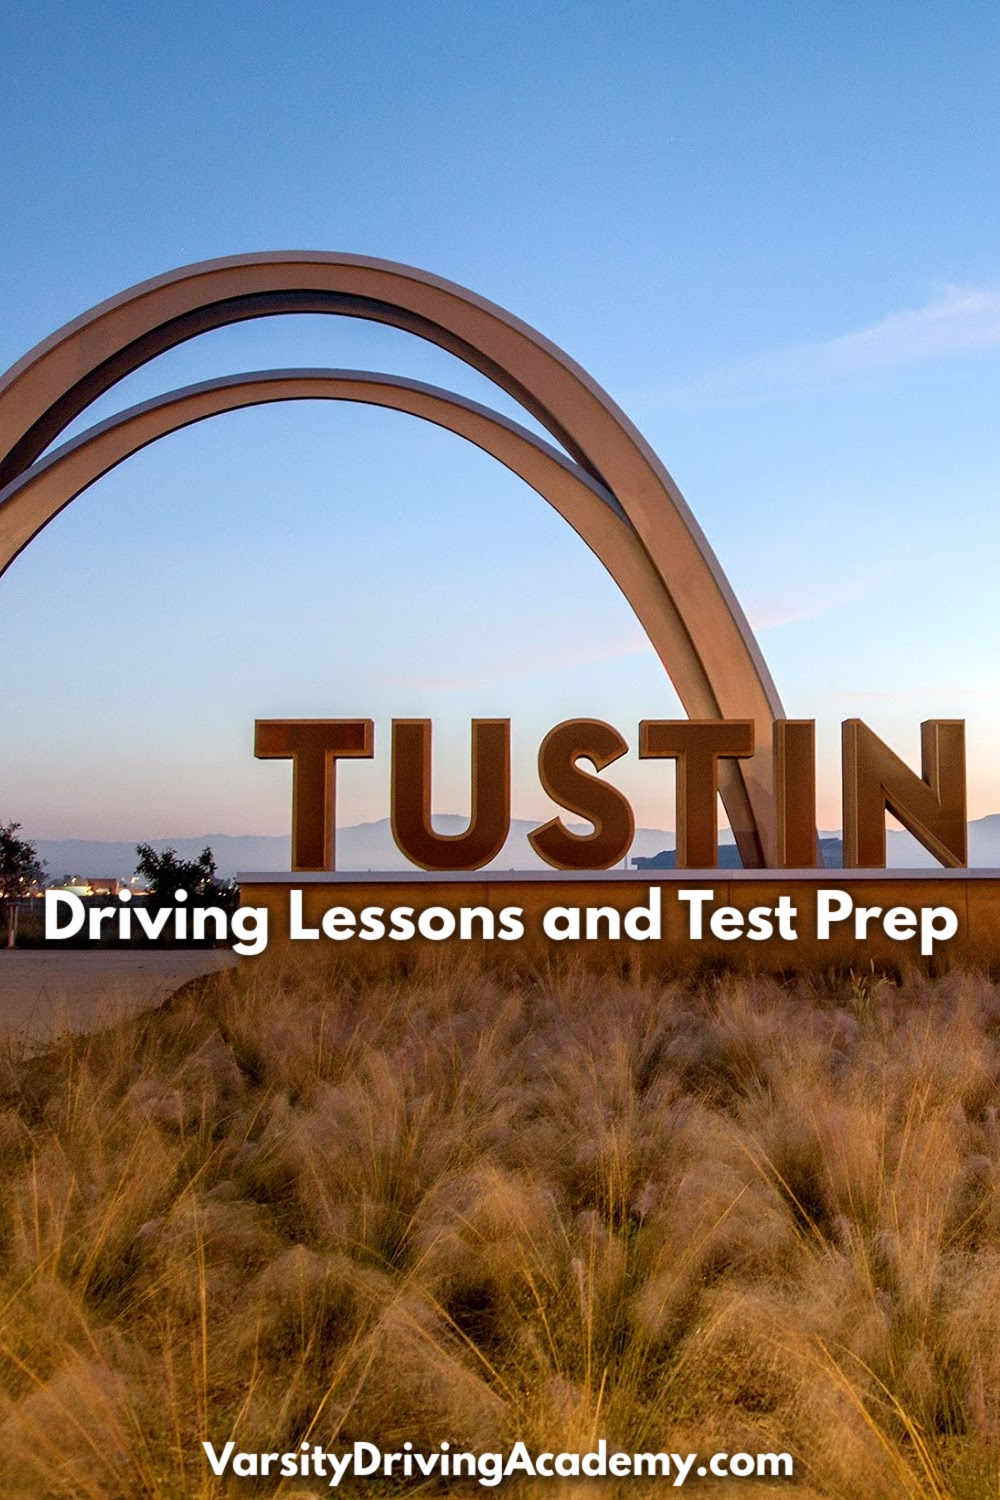 Tustin driving lessons help teach students how to drive defensively and confidently while following common driving laws from every state.